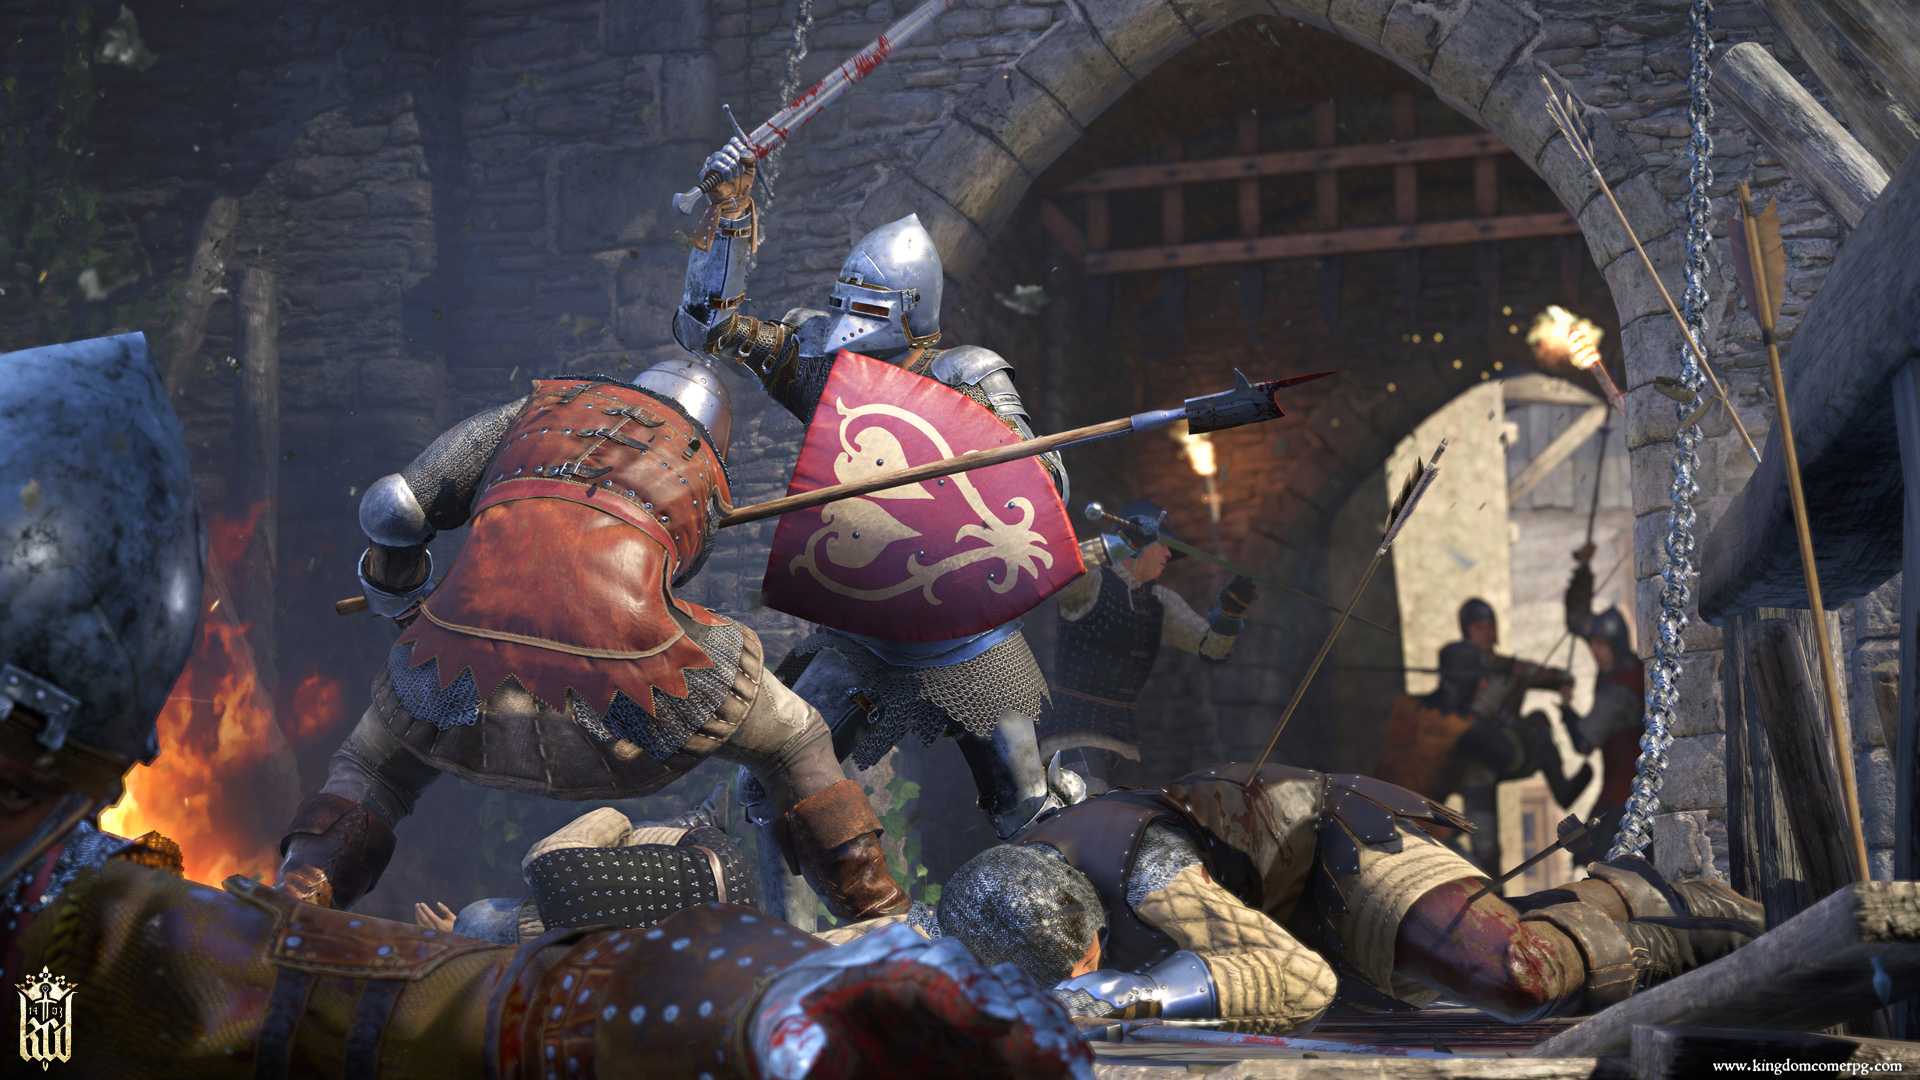 Get up to speed with Kingdom Come: Deliverance before next month's launch screenshot